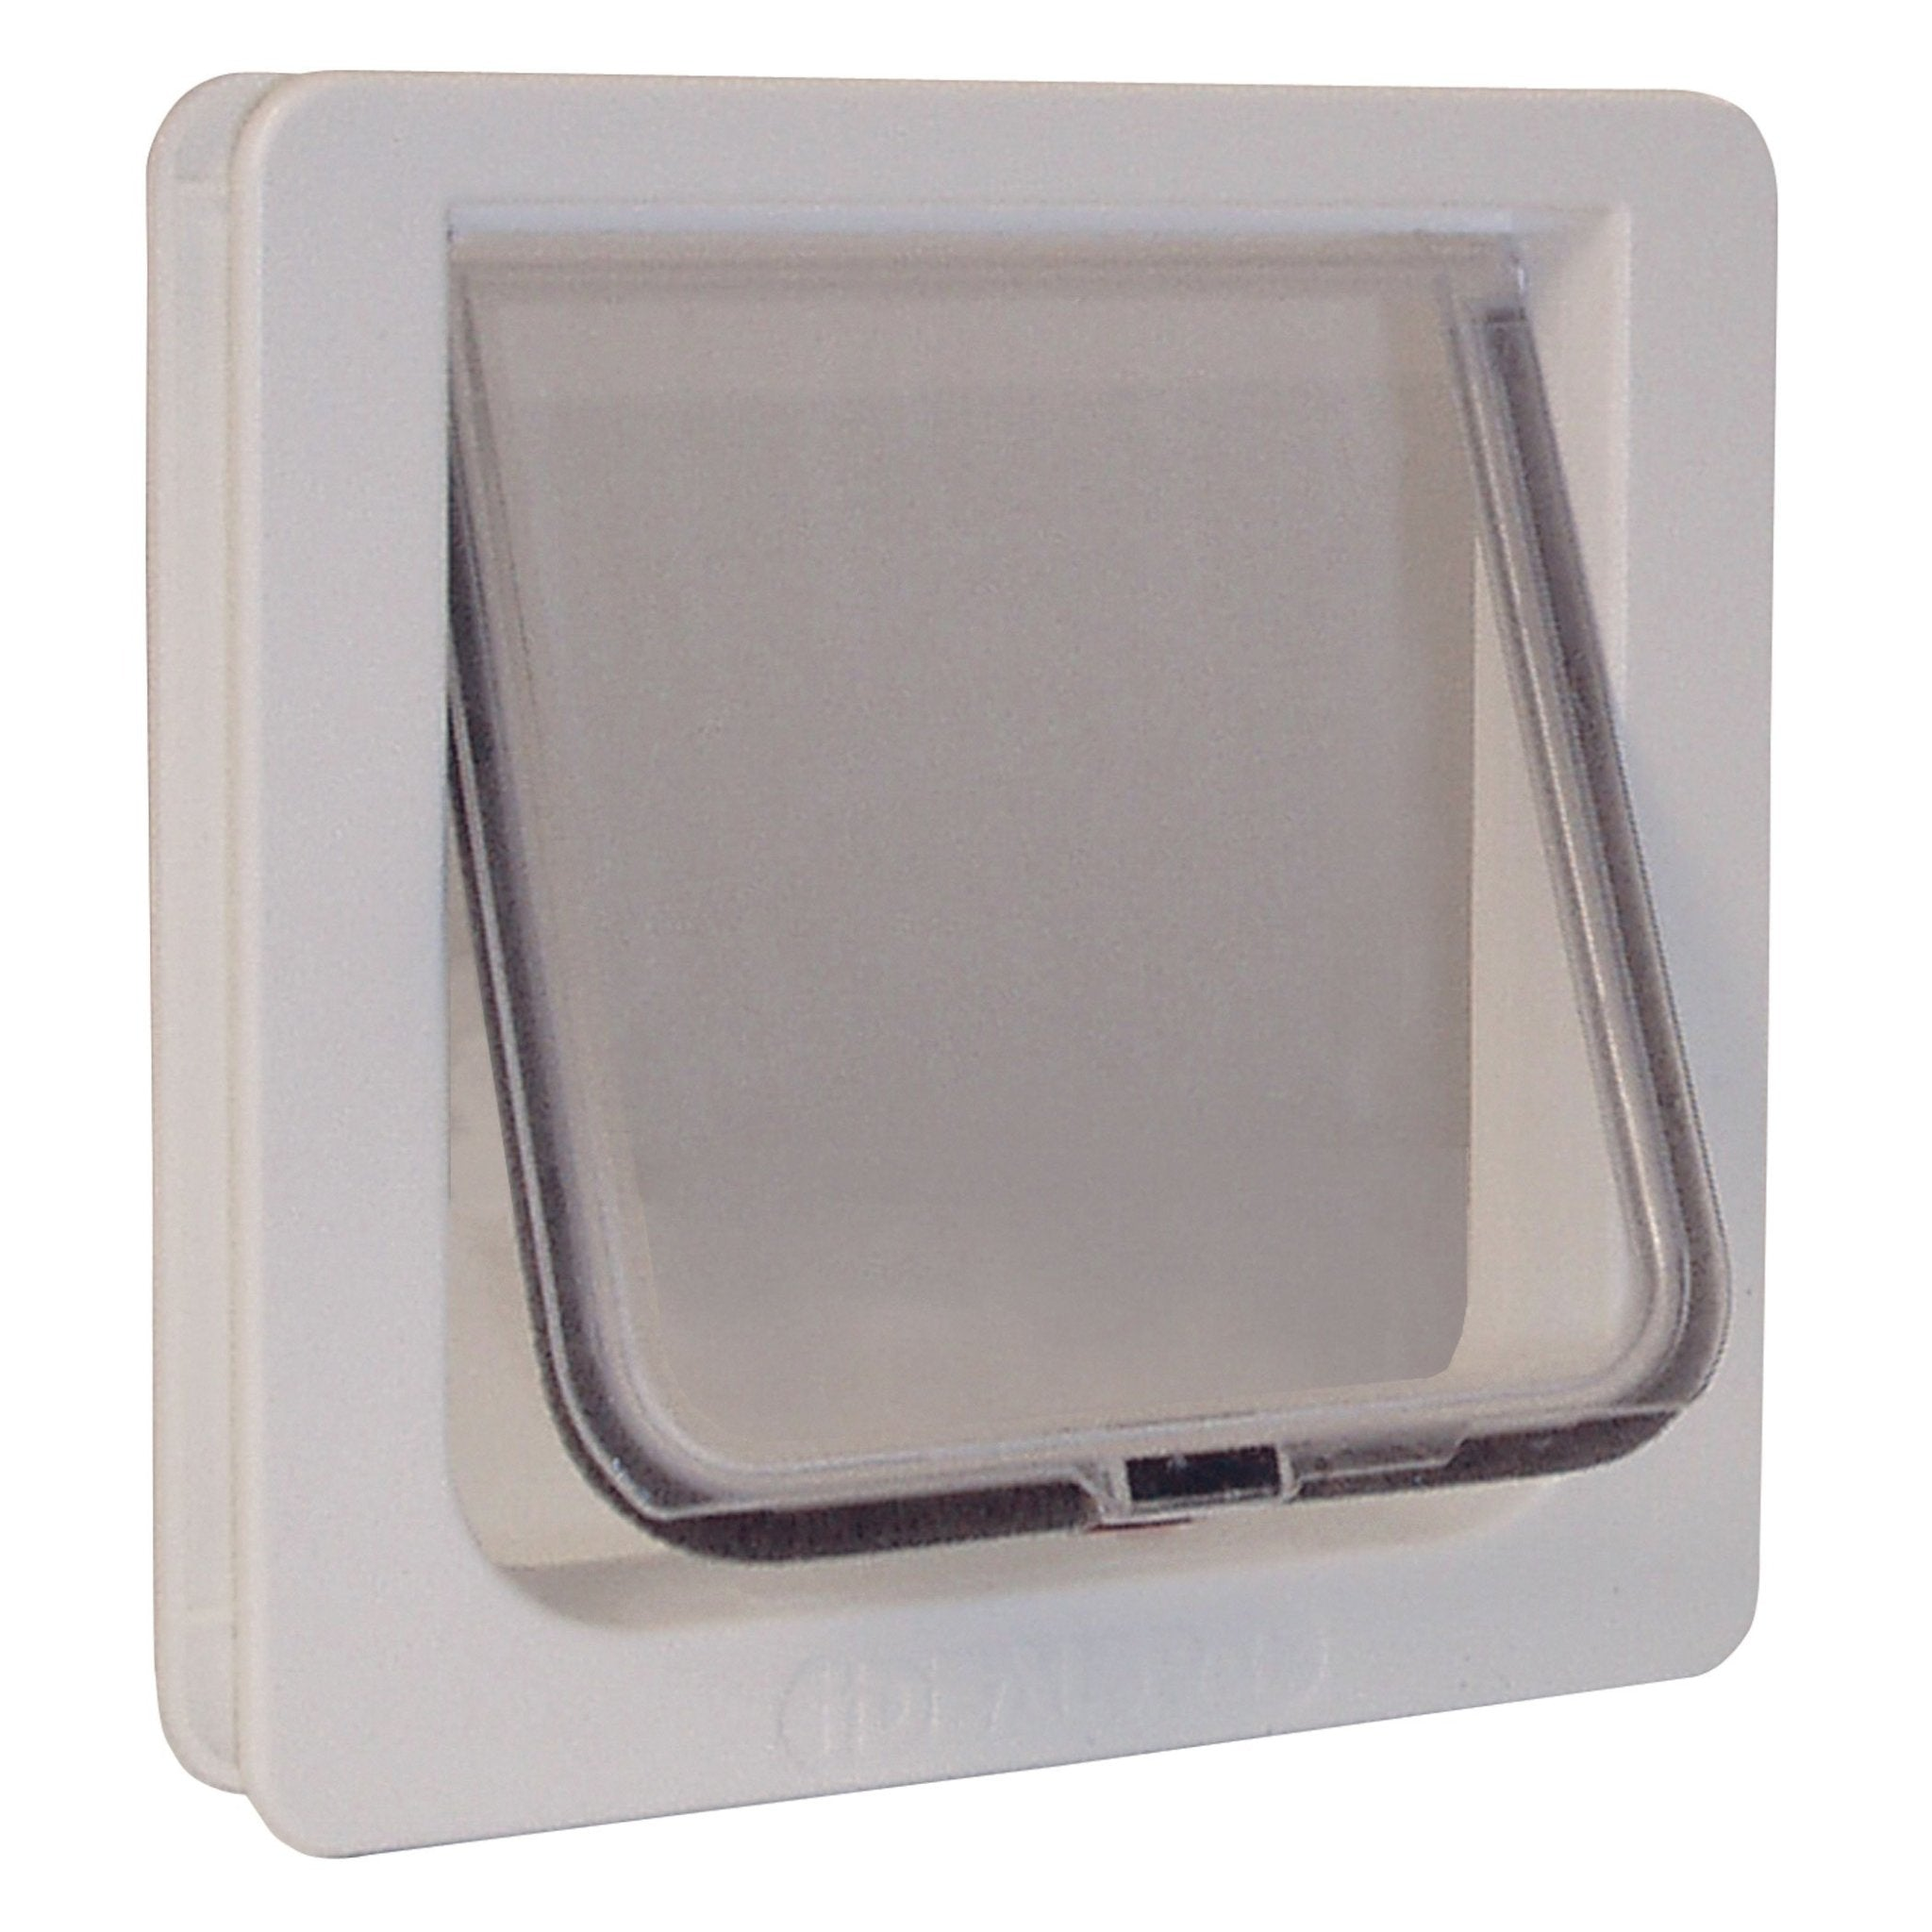 Lockable Cat Flap Door Small White 1.625″ x 8.18″ x 7.94″